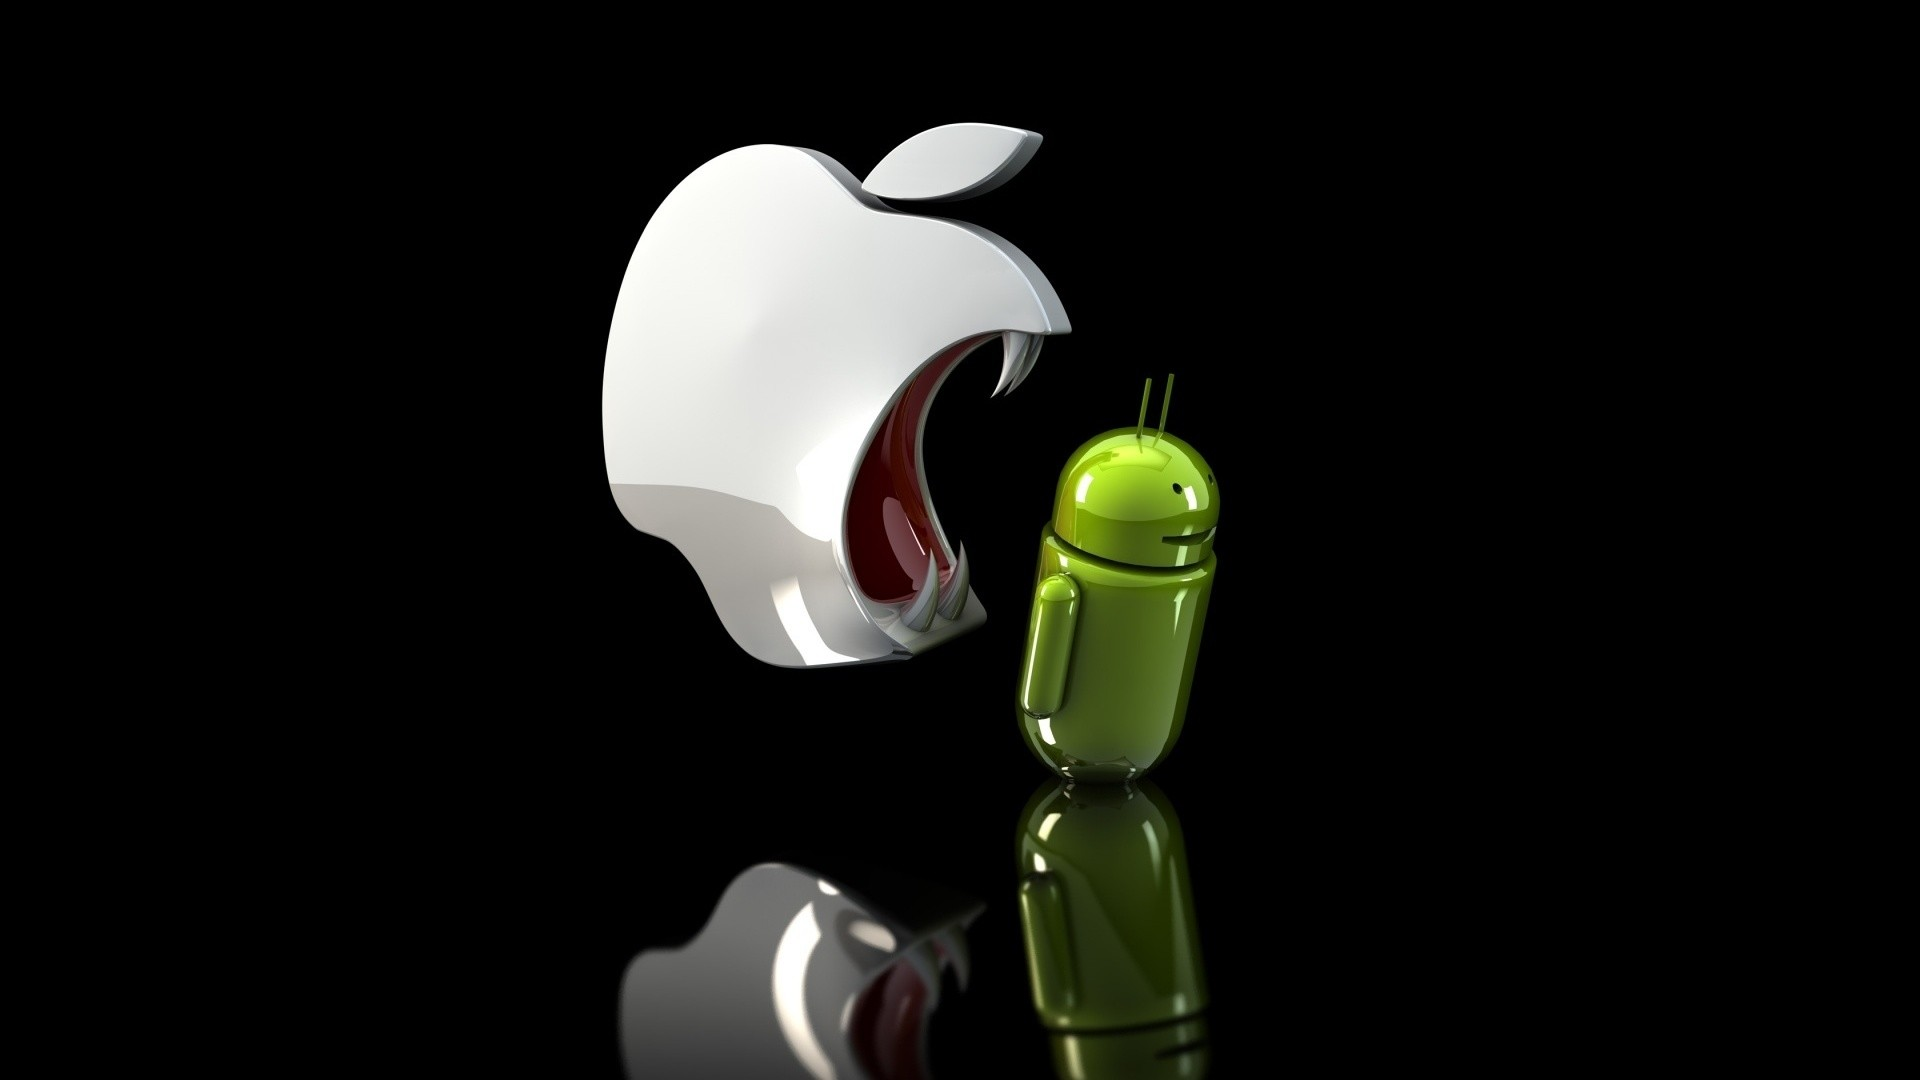 1920x1080 funny apple and android broken wallpaper hd 1